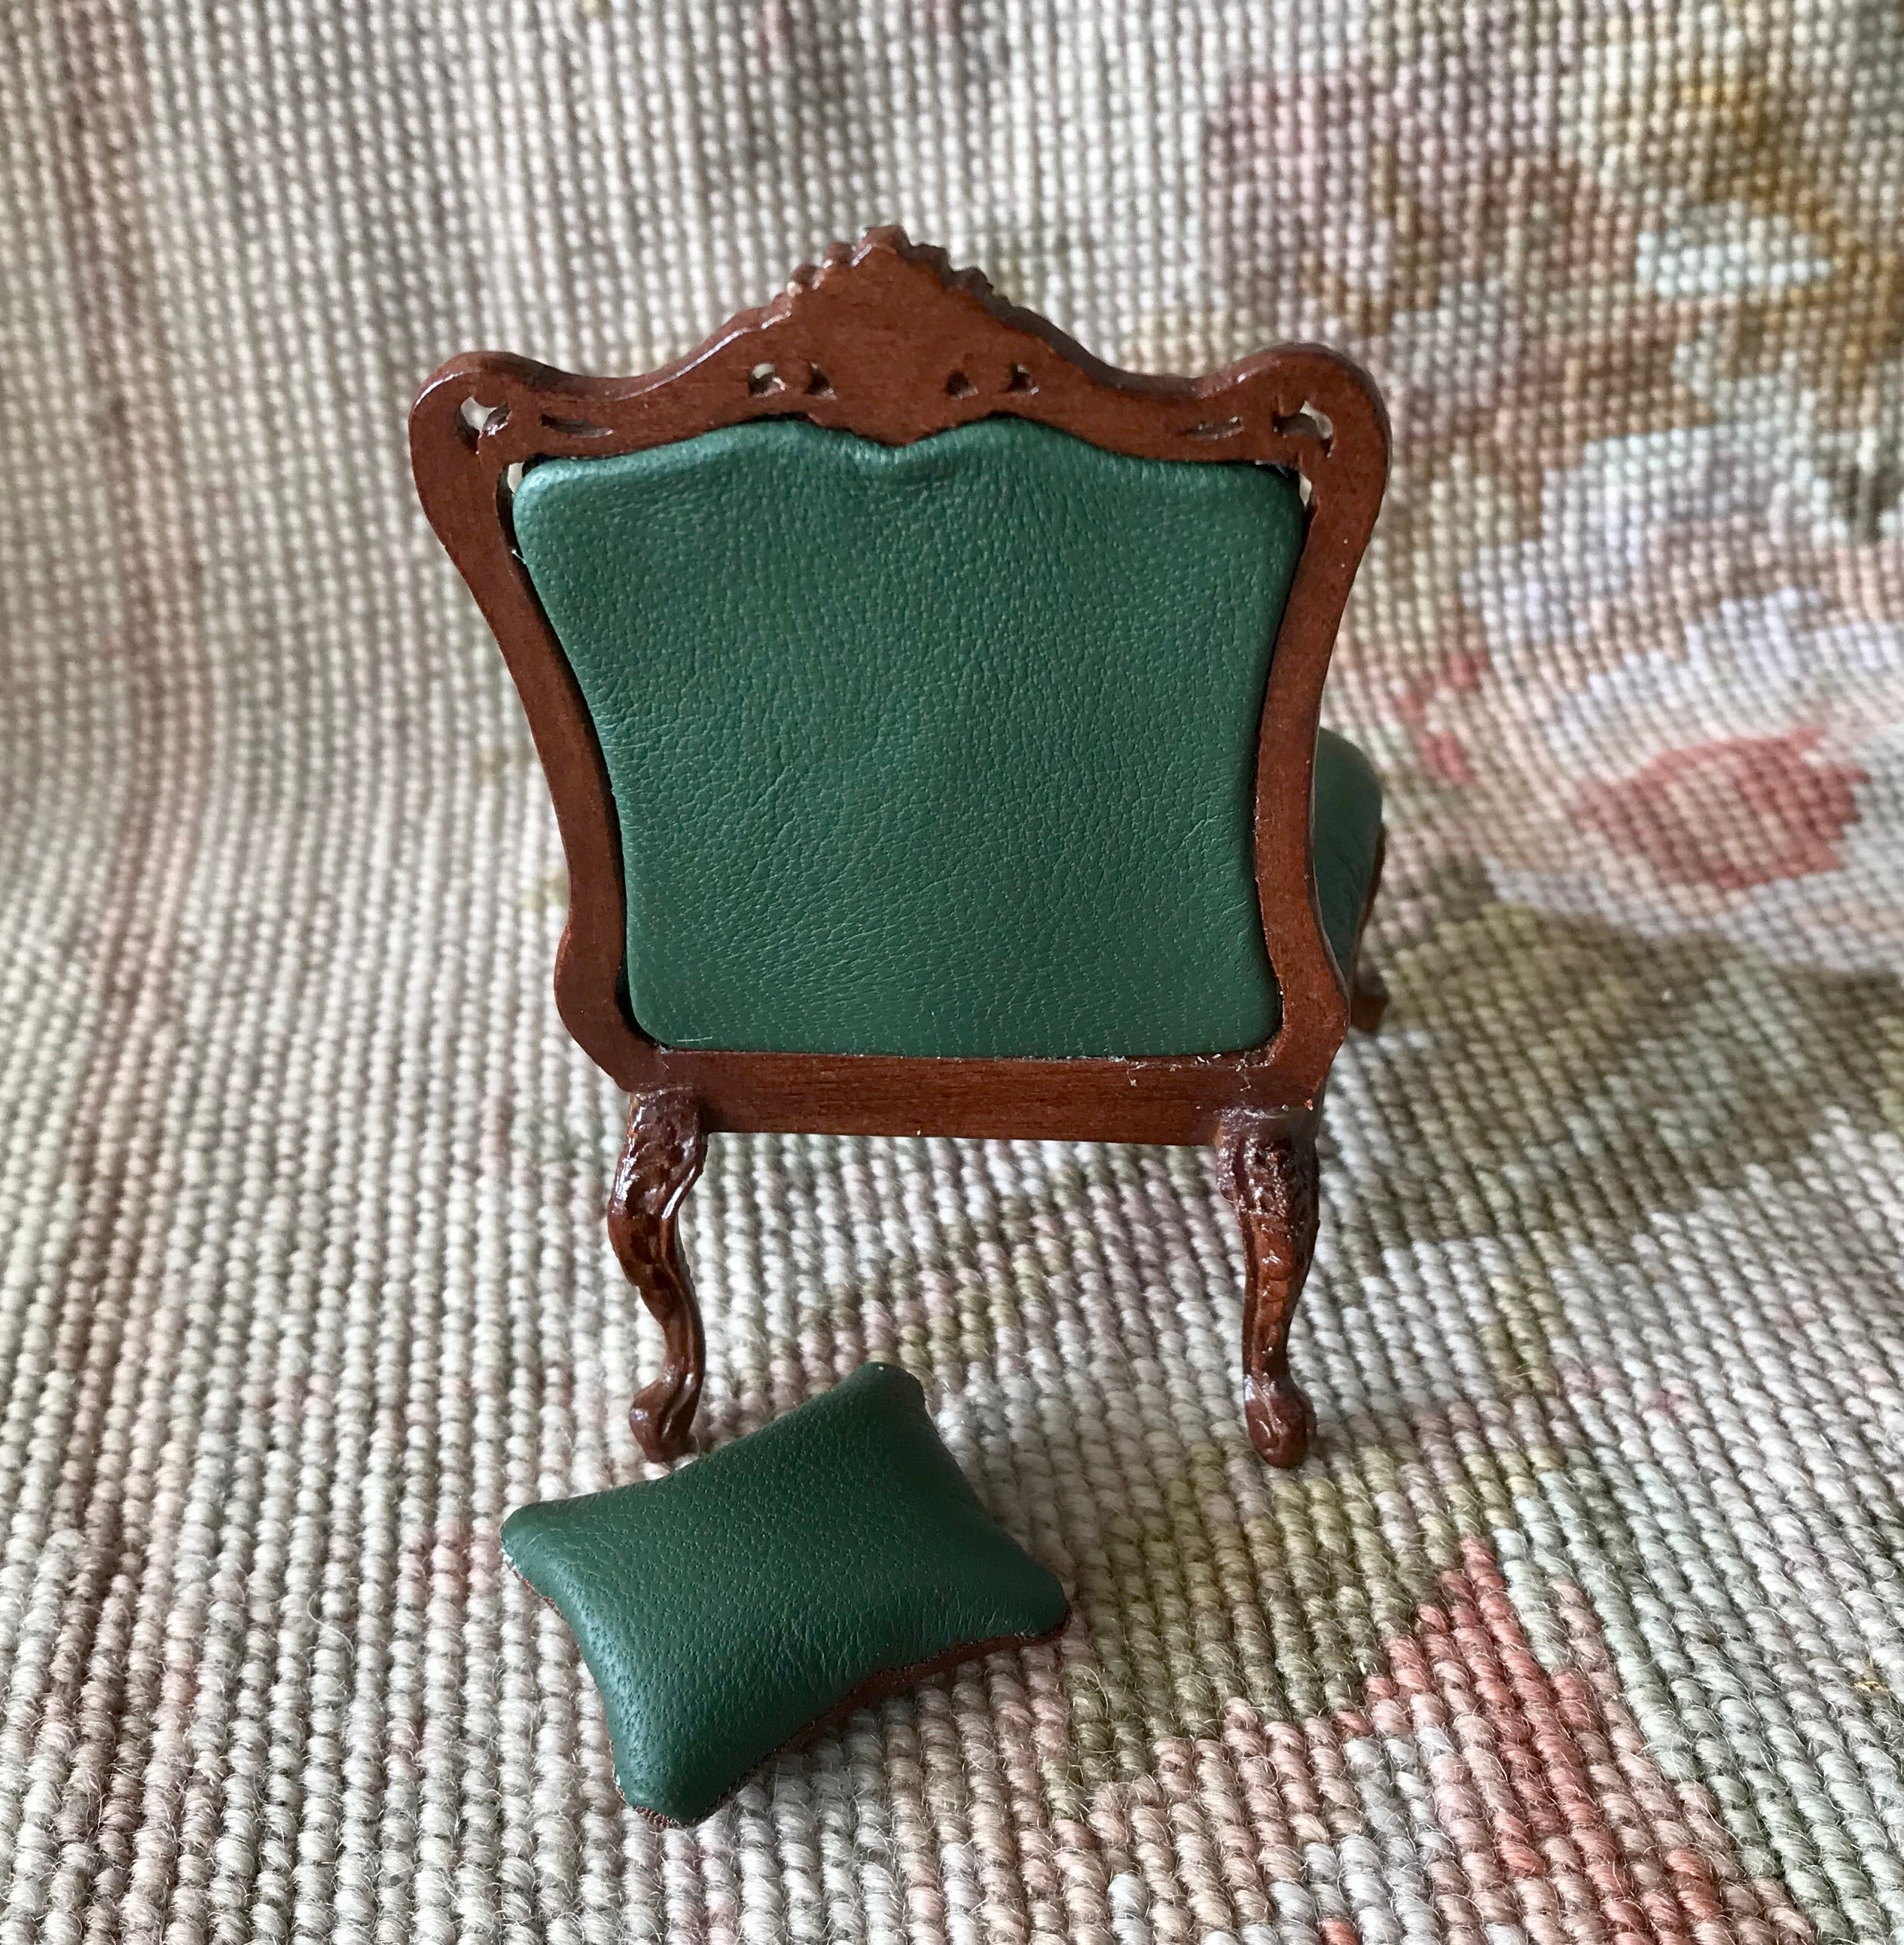 Bespaq Juniper Green Side Chair Seat With Pillow 1:12 Dollhouse Miniature